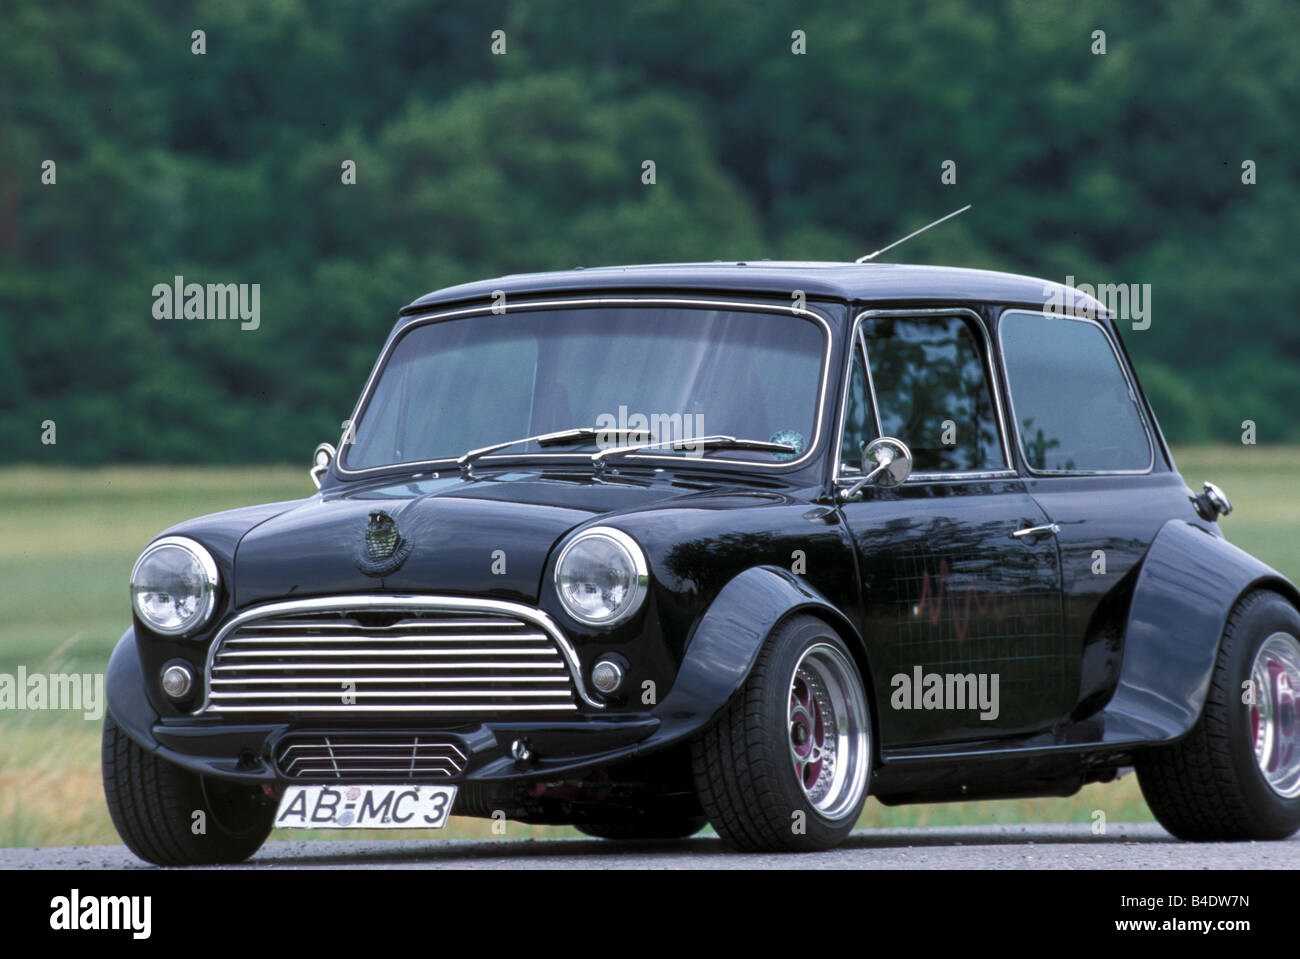 Car, Mini MKII Cooper, coupe/Coupe, Miniapprox.s, black, model year 1990-2001, Tuning, diagonal from the front, - Stock Image